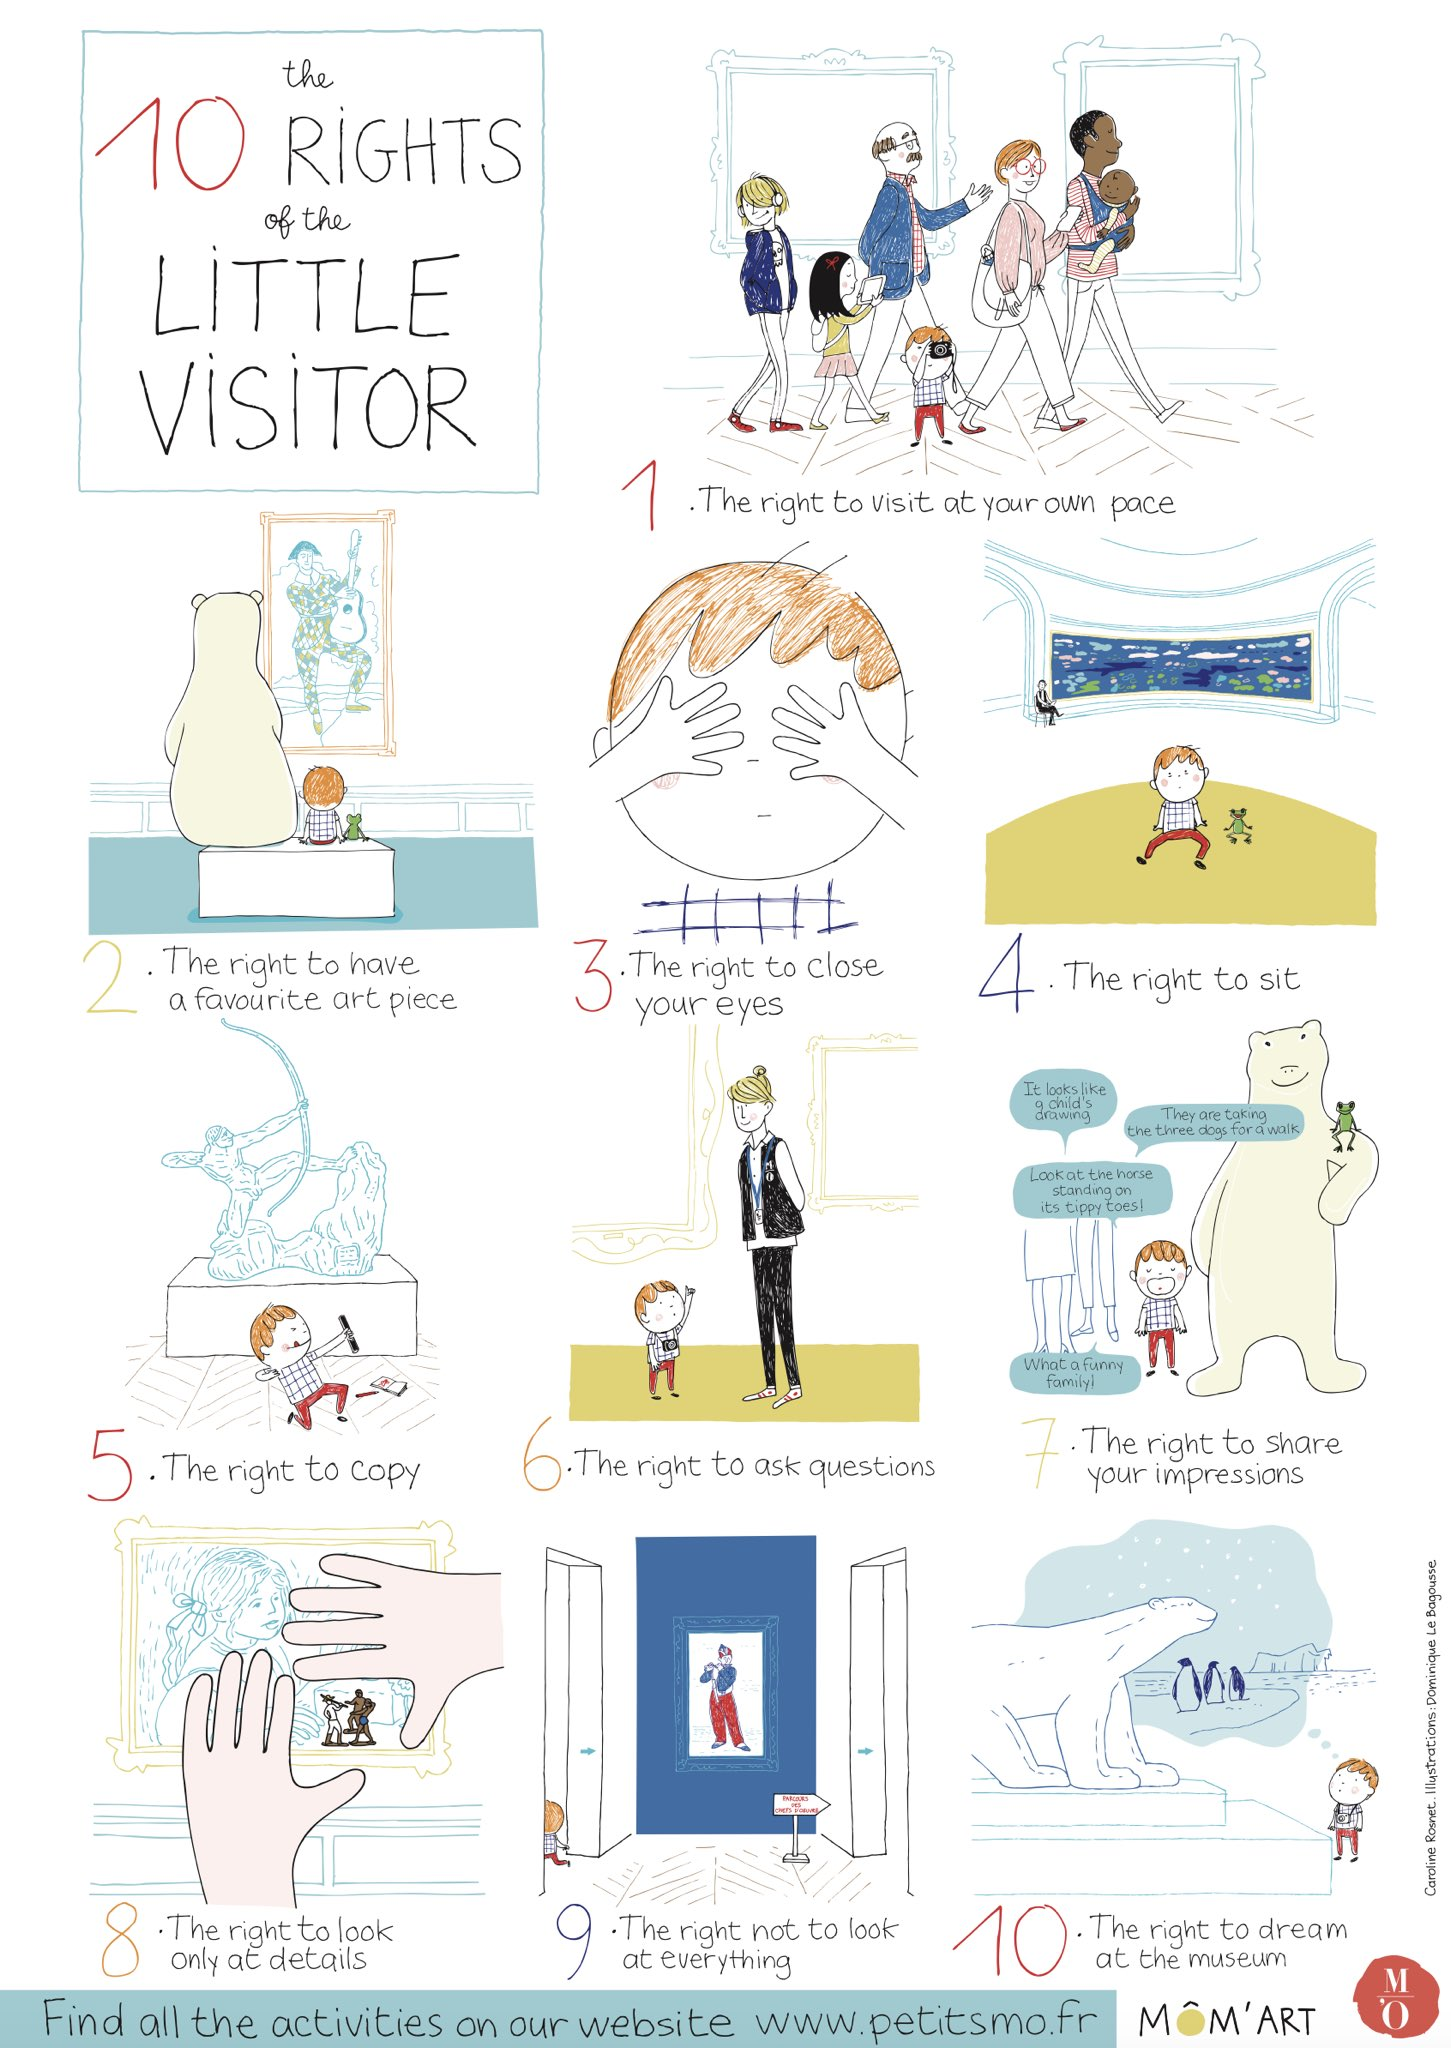 museum-rights-little-visitor